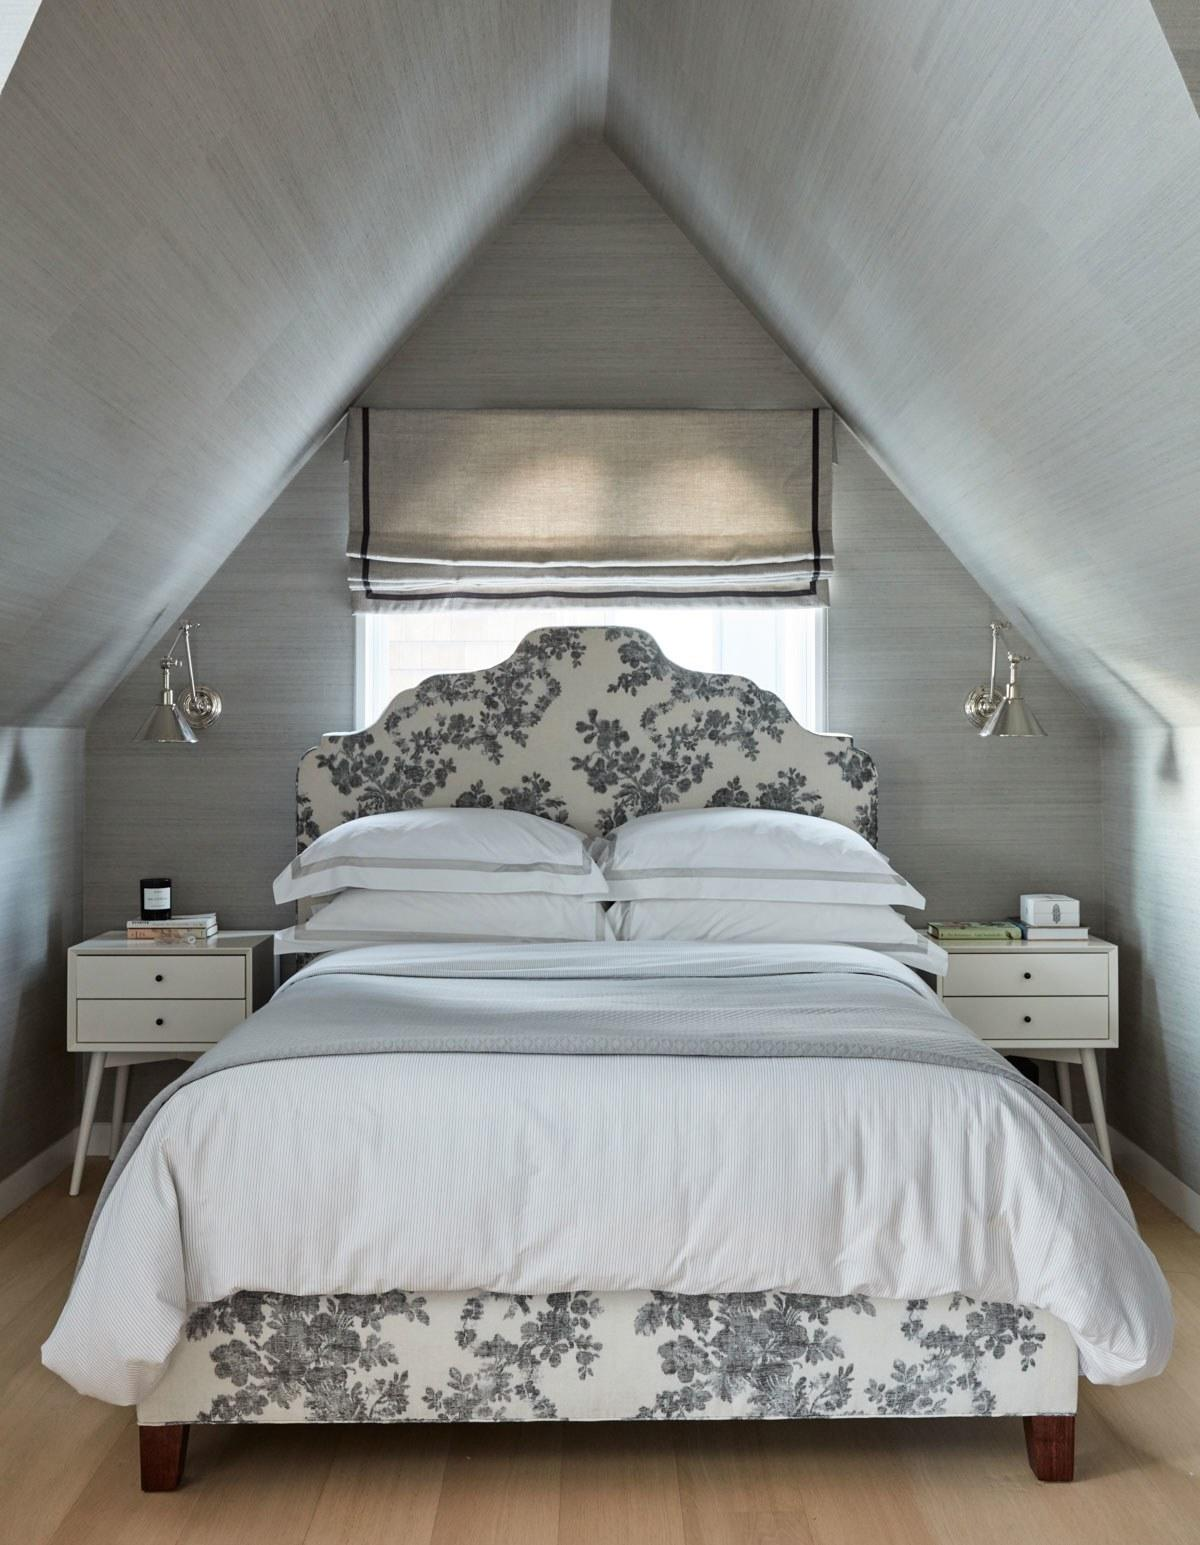 """<div class=""""caption""""> Catherine Kwong installed sconces above the nightstands in this <a href=""""https://www.architecturaldigest.com/story/catherine-kwong-house-san-francisco?mbid=synd_yahoo_rss"""" rel=""""nofollow noopener"""" target=""""_blank"""" data-ylk=""""slk:San Francisco bedroom"""" class=""""link rapid-noclick-resp"""">San Francisco bedroom</a>. </div> <cite class=""""credit"""">Photo: John Merkl</cite>"""